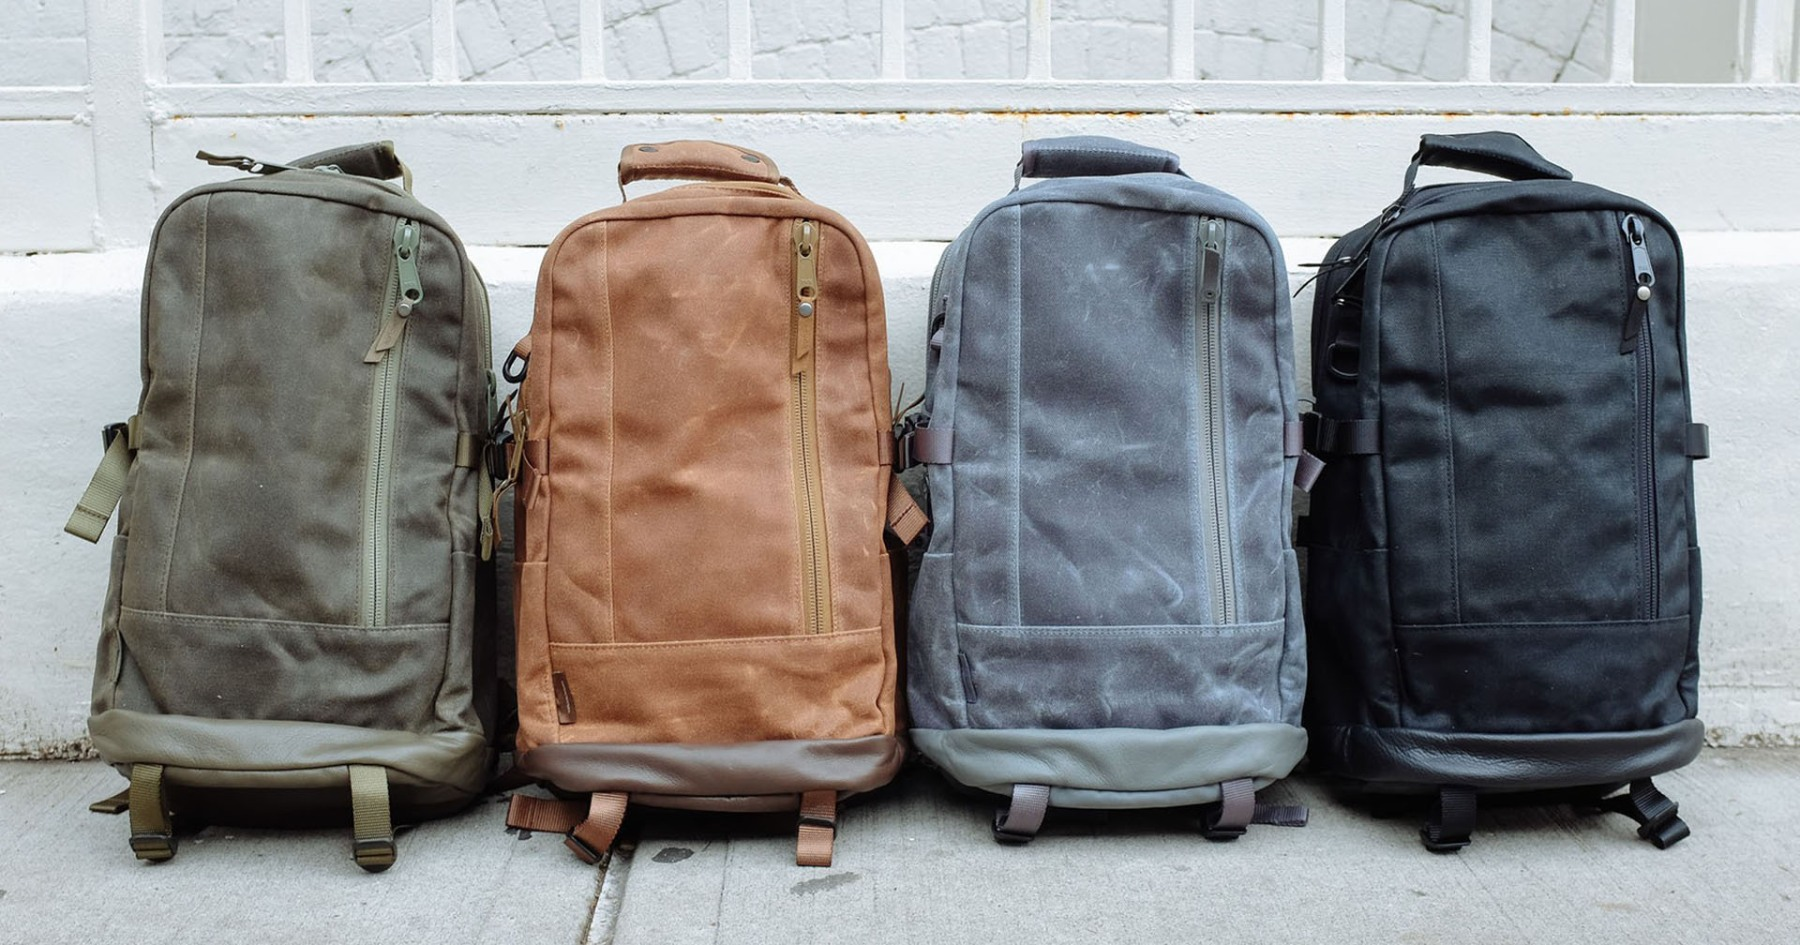 c785f3179f 3sixteens Daypacks are the Best Backpacks of 2018 - InsideHook